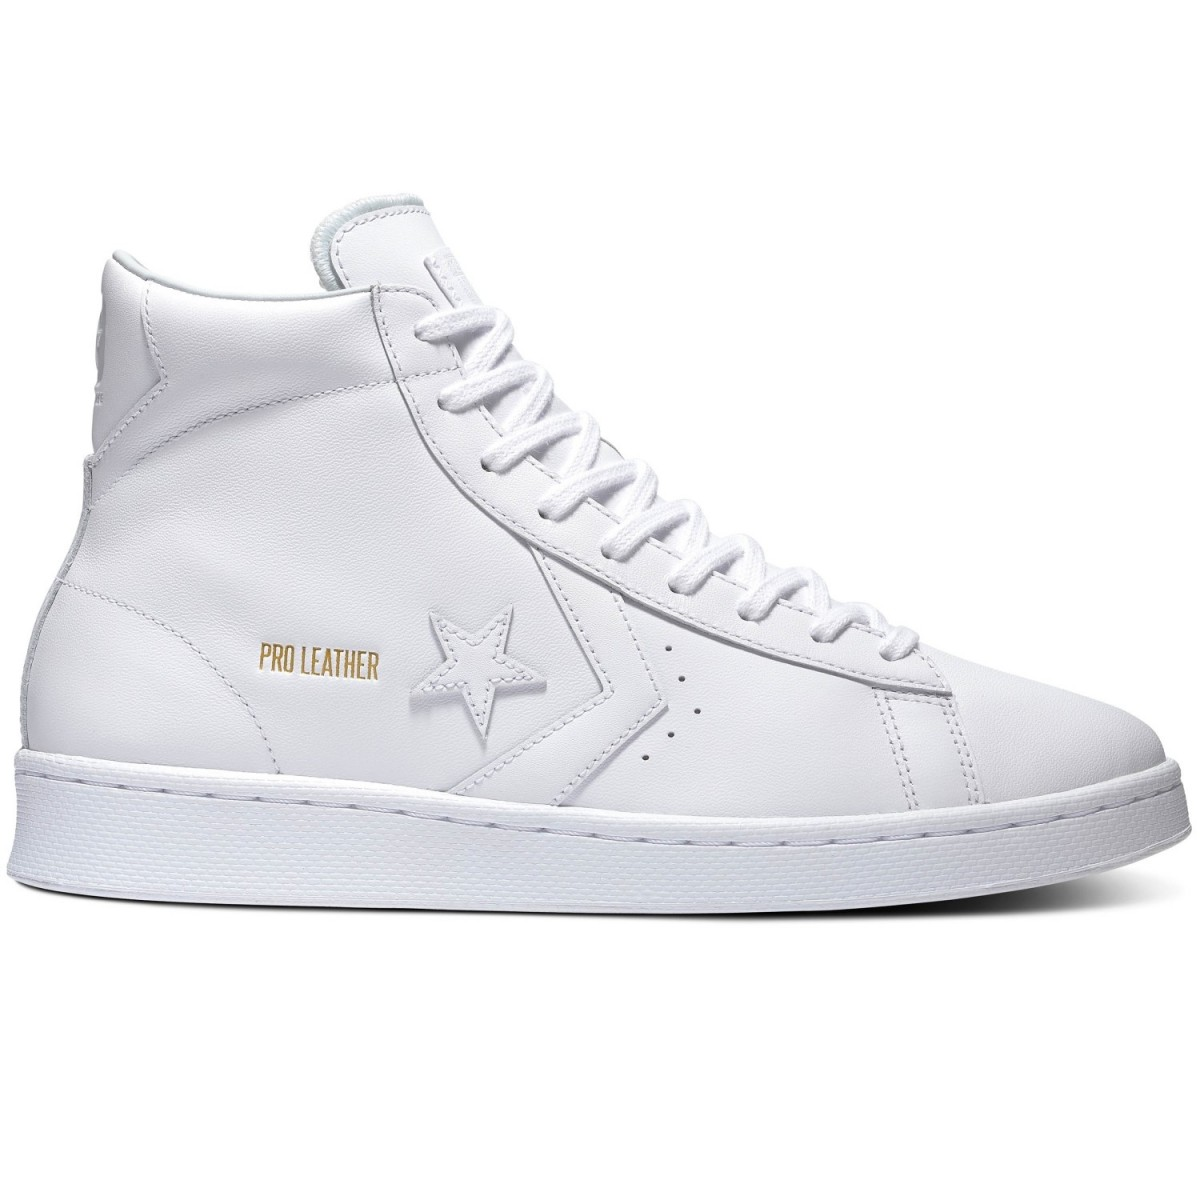 Converse Pro Leather Mid Sneaker